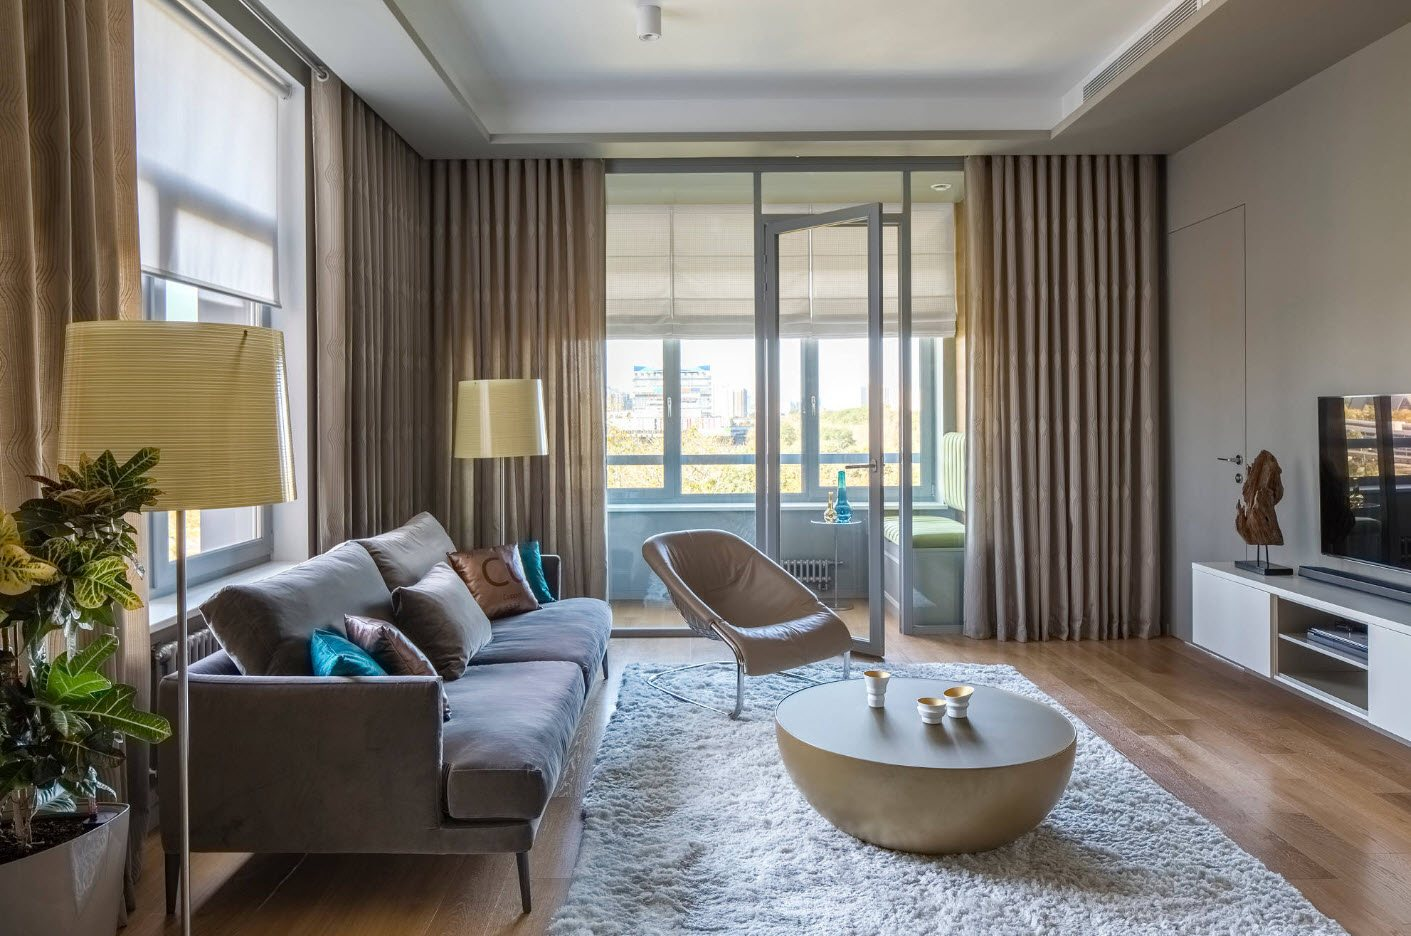 Color contrast in the living room with the balcony zoned with curtains